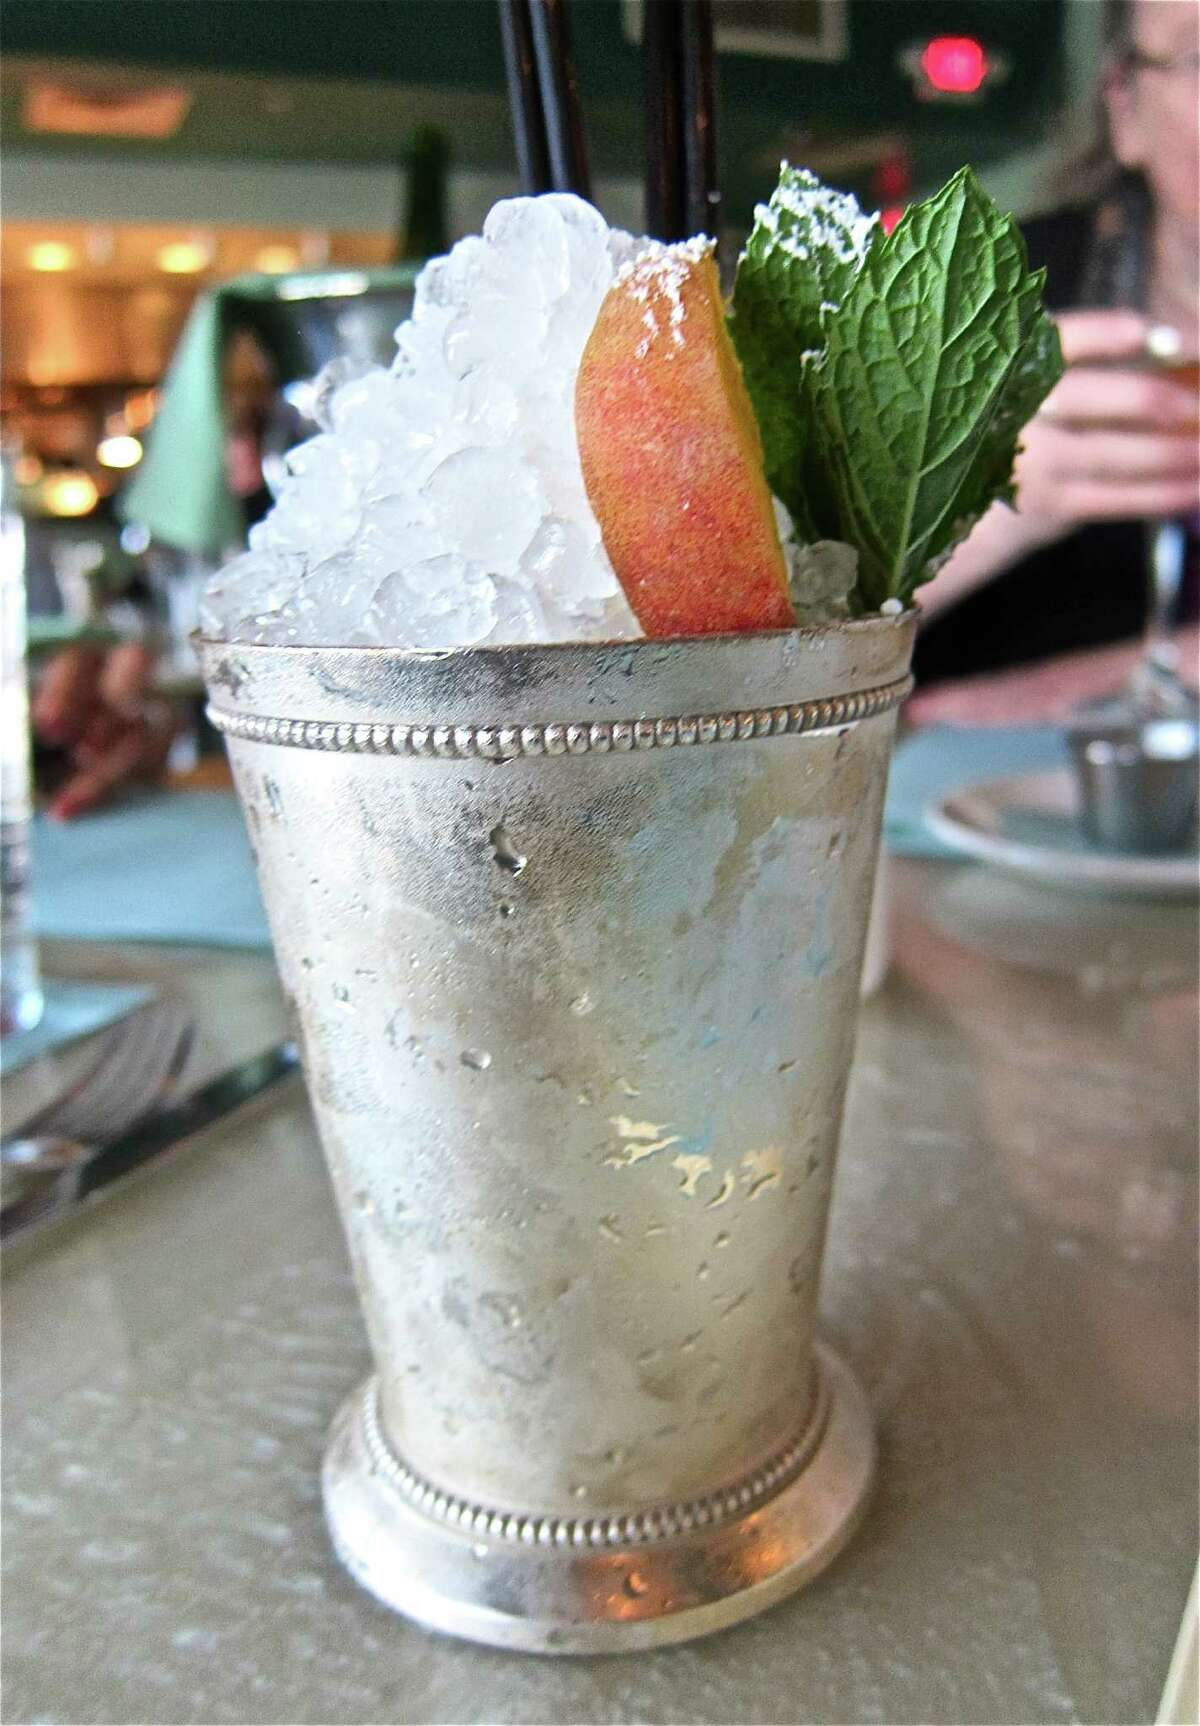 SOUTHERN SIP: Celeb chef Bryan Caswell's Gulf-seafood-savvy Reef restaurant in Midtown now offers a seasonal Peach Julep, made with a peach whiskey from Whitmeyer's Distilling in Houston. Served in a traditional silver julep tumbler, it arrives heaped with crushed ice that melts into the strong drink as you sip it with a straw, all topped off with a peach segment and fresh mint leaves. 2600 Travis, 713-526-8282, reefhouston.com.